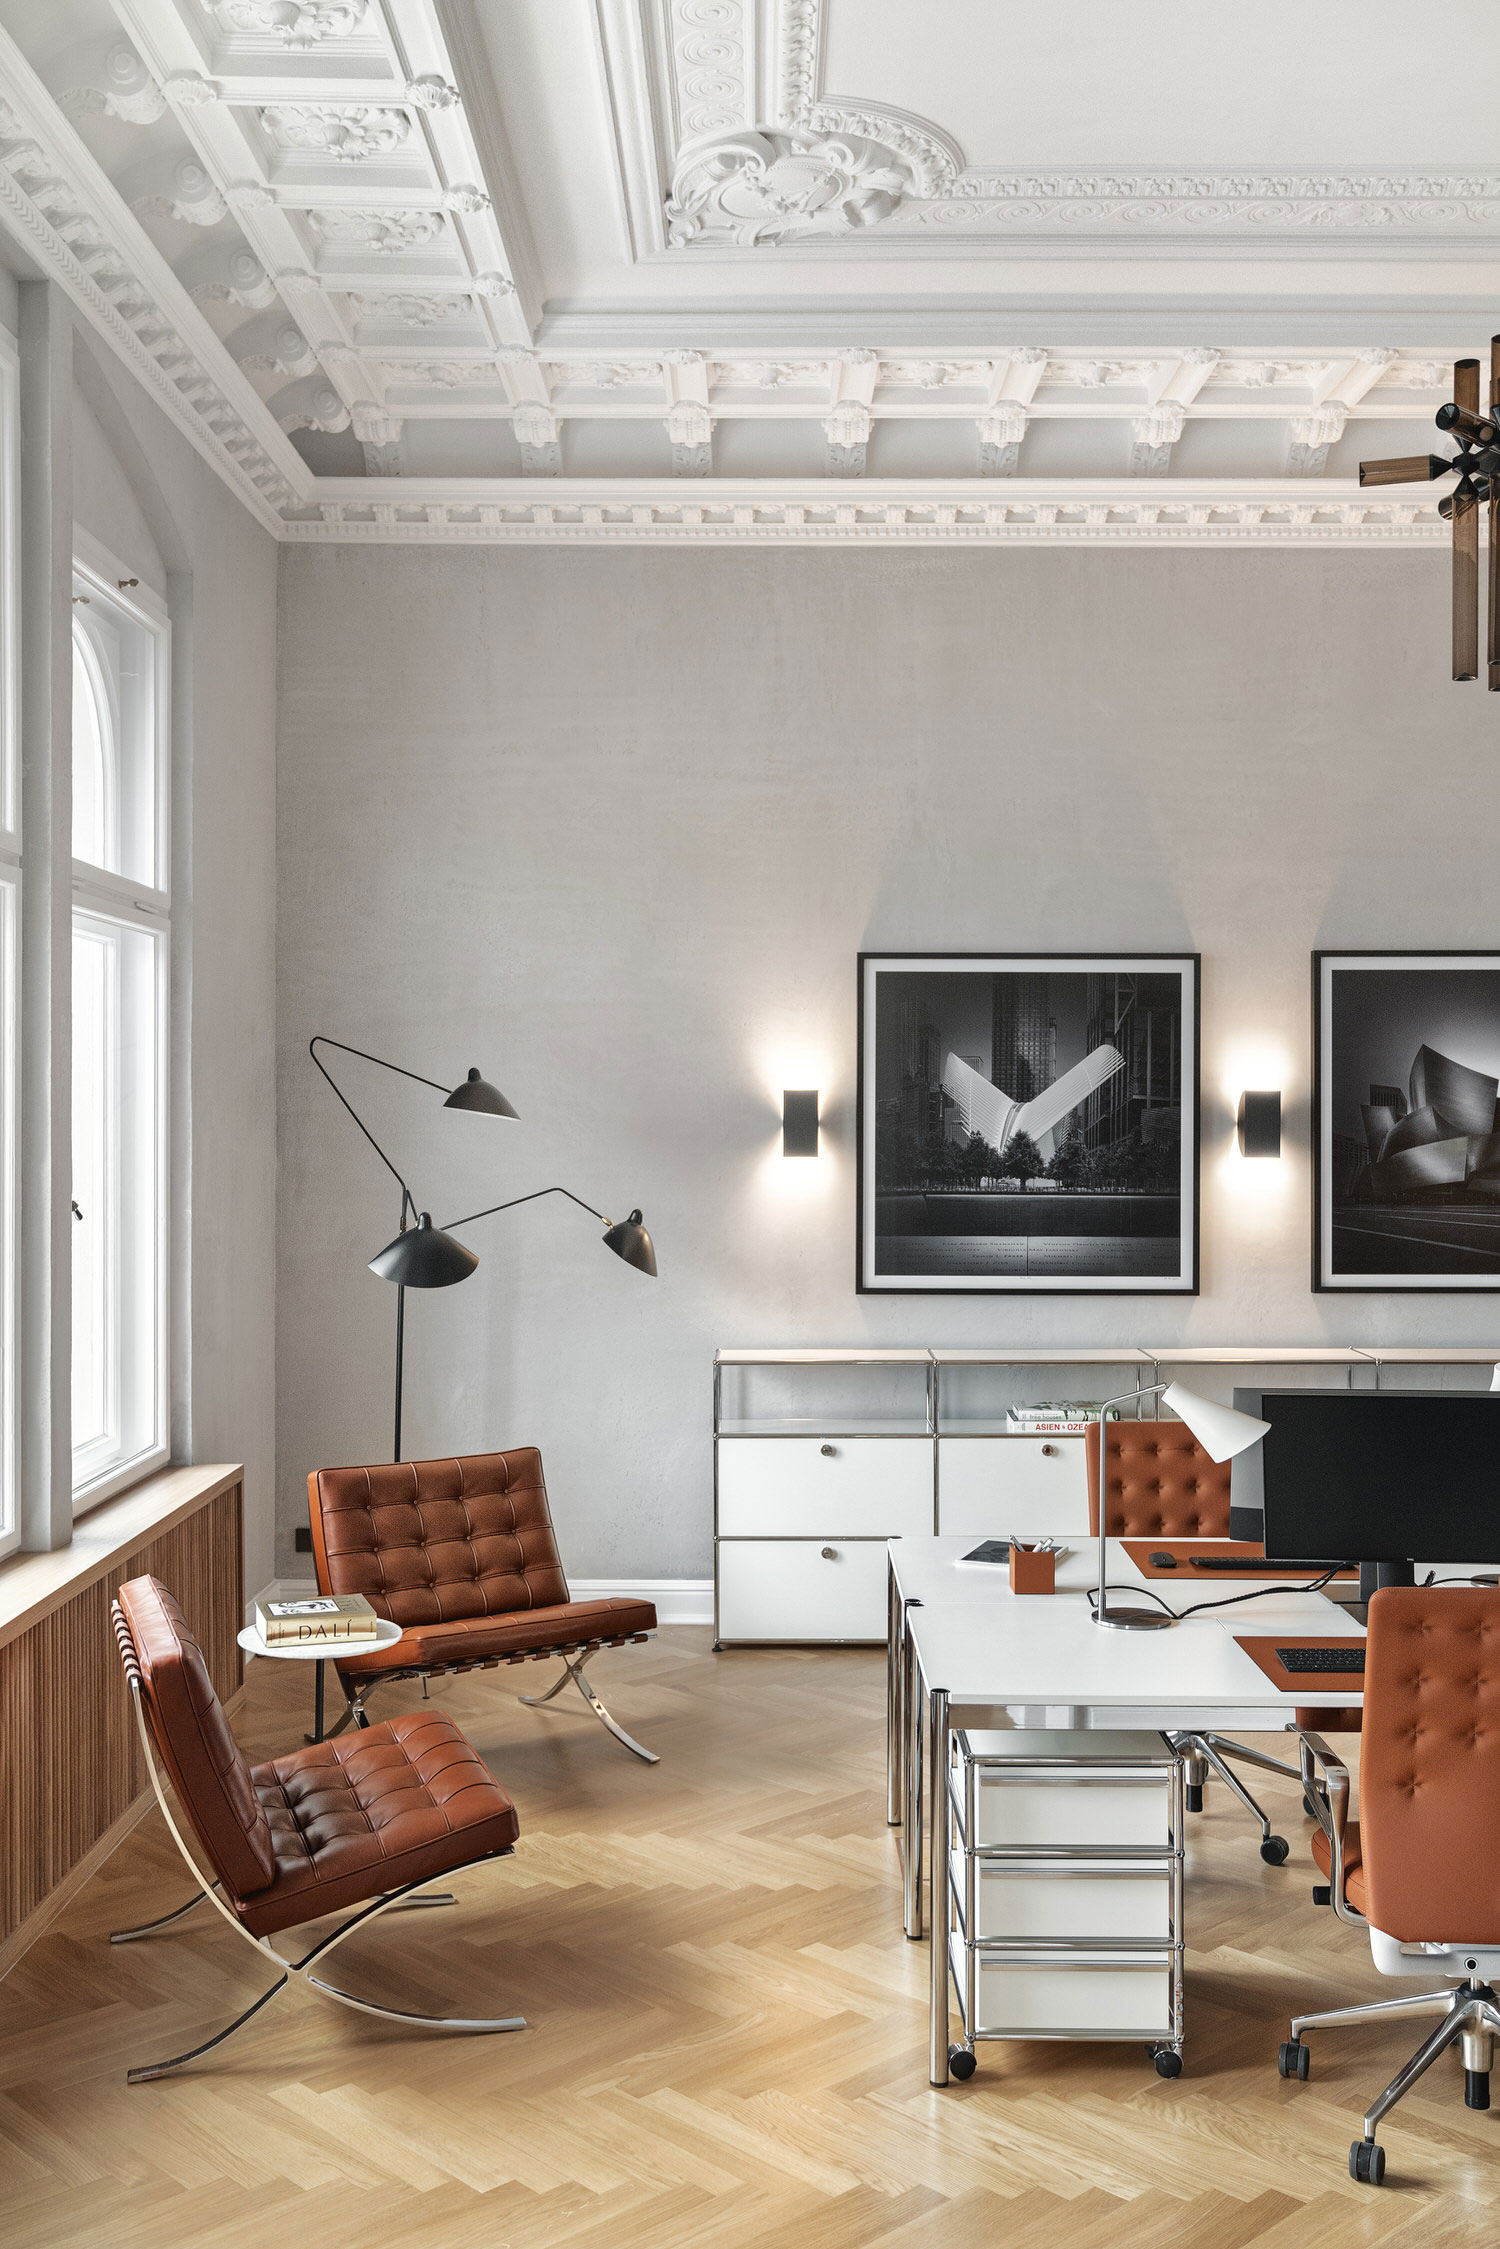 Maria Murawsky, Office E Berlin, Luxury Office Interiors, Photo Tom Kurek | Yellowtrace